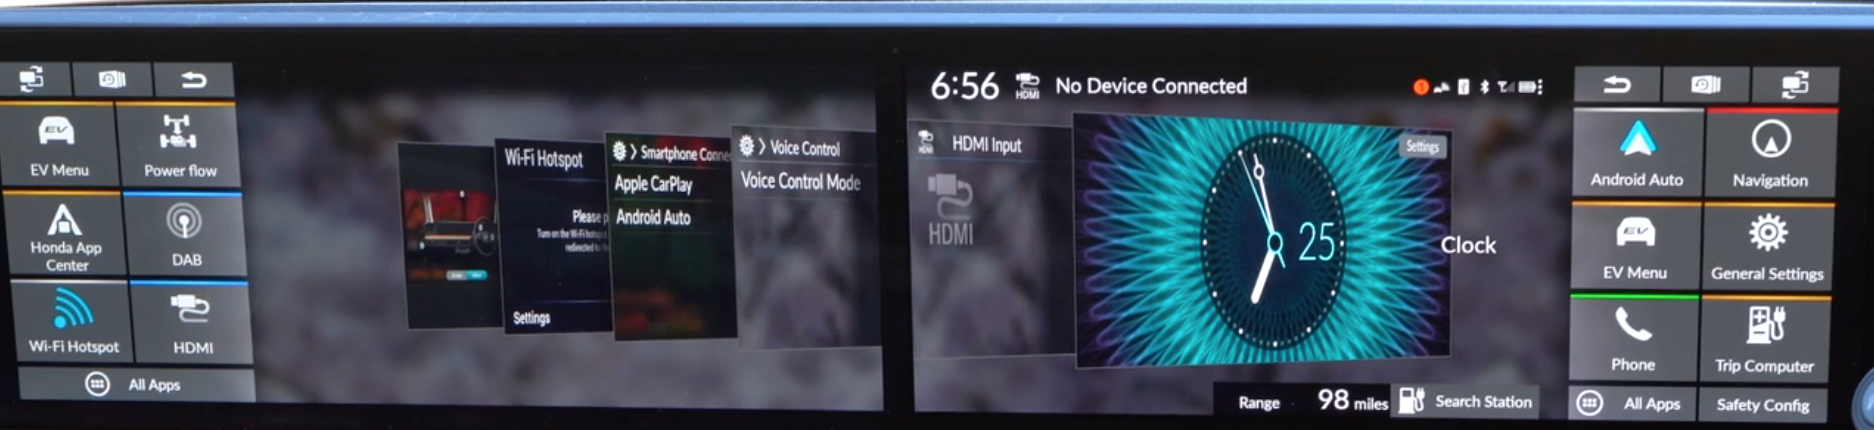 Open app tabs spread out onto the dual screen of the infotainment display